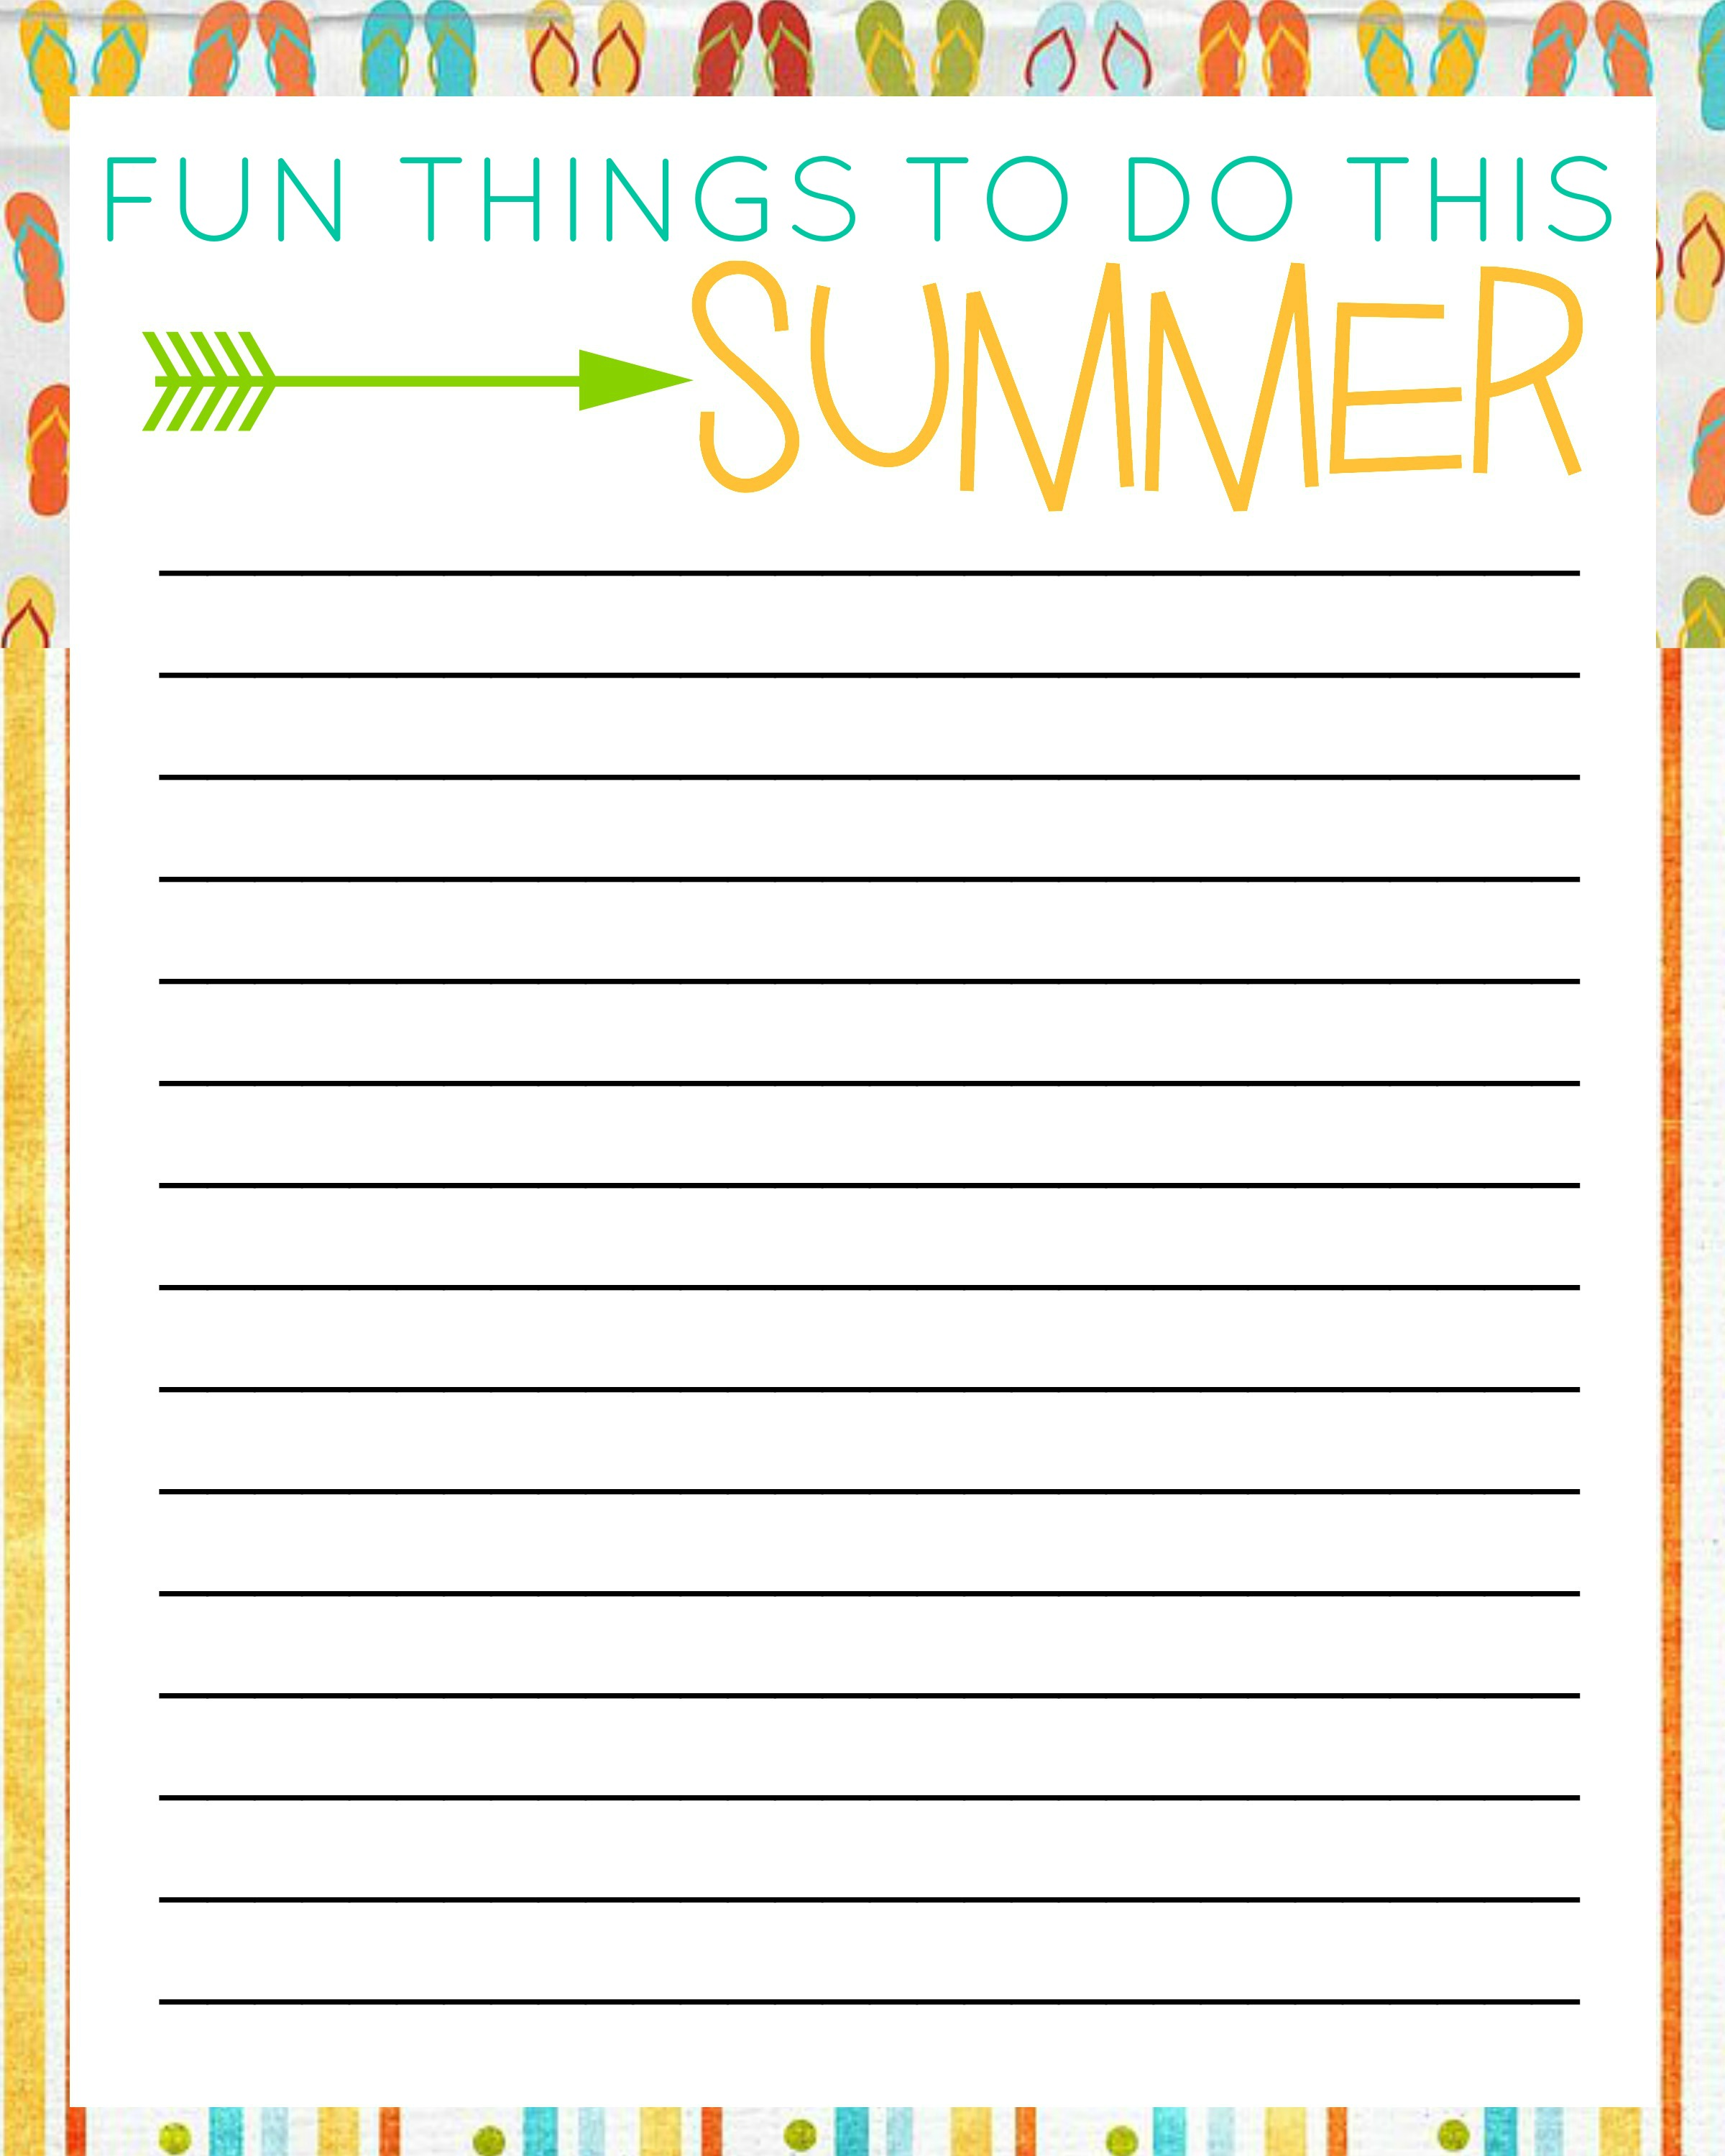 7 Best Images Of Things To Do List Free Printable